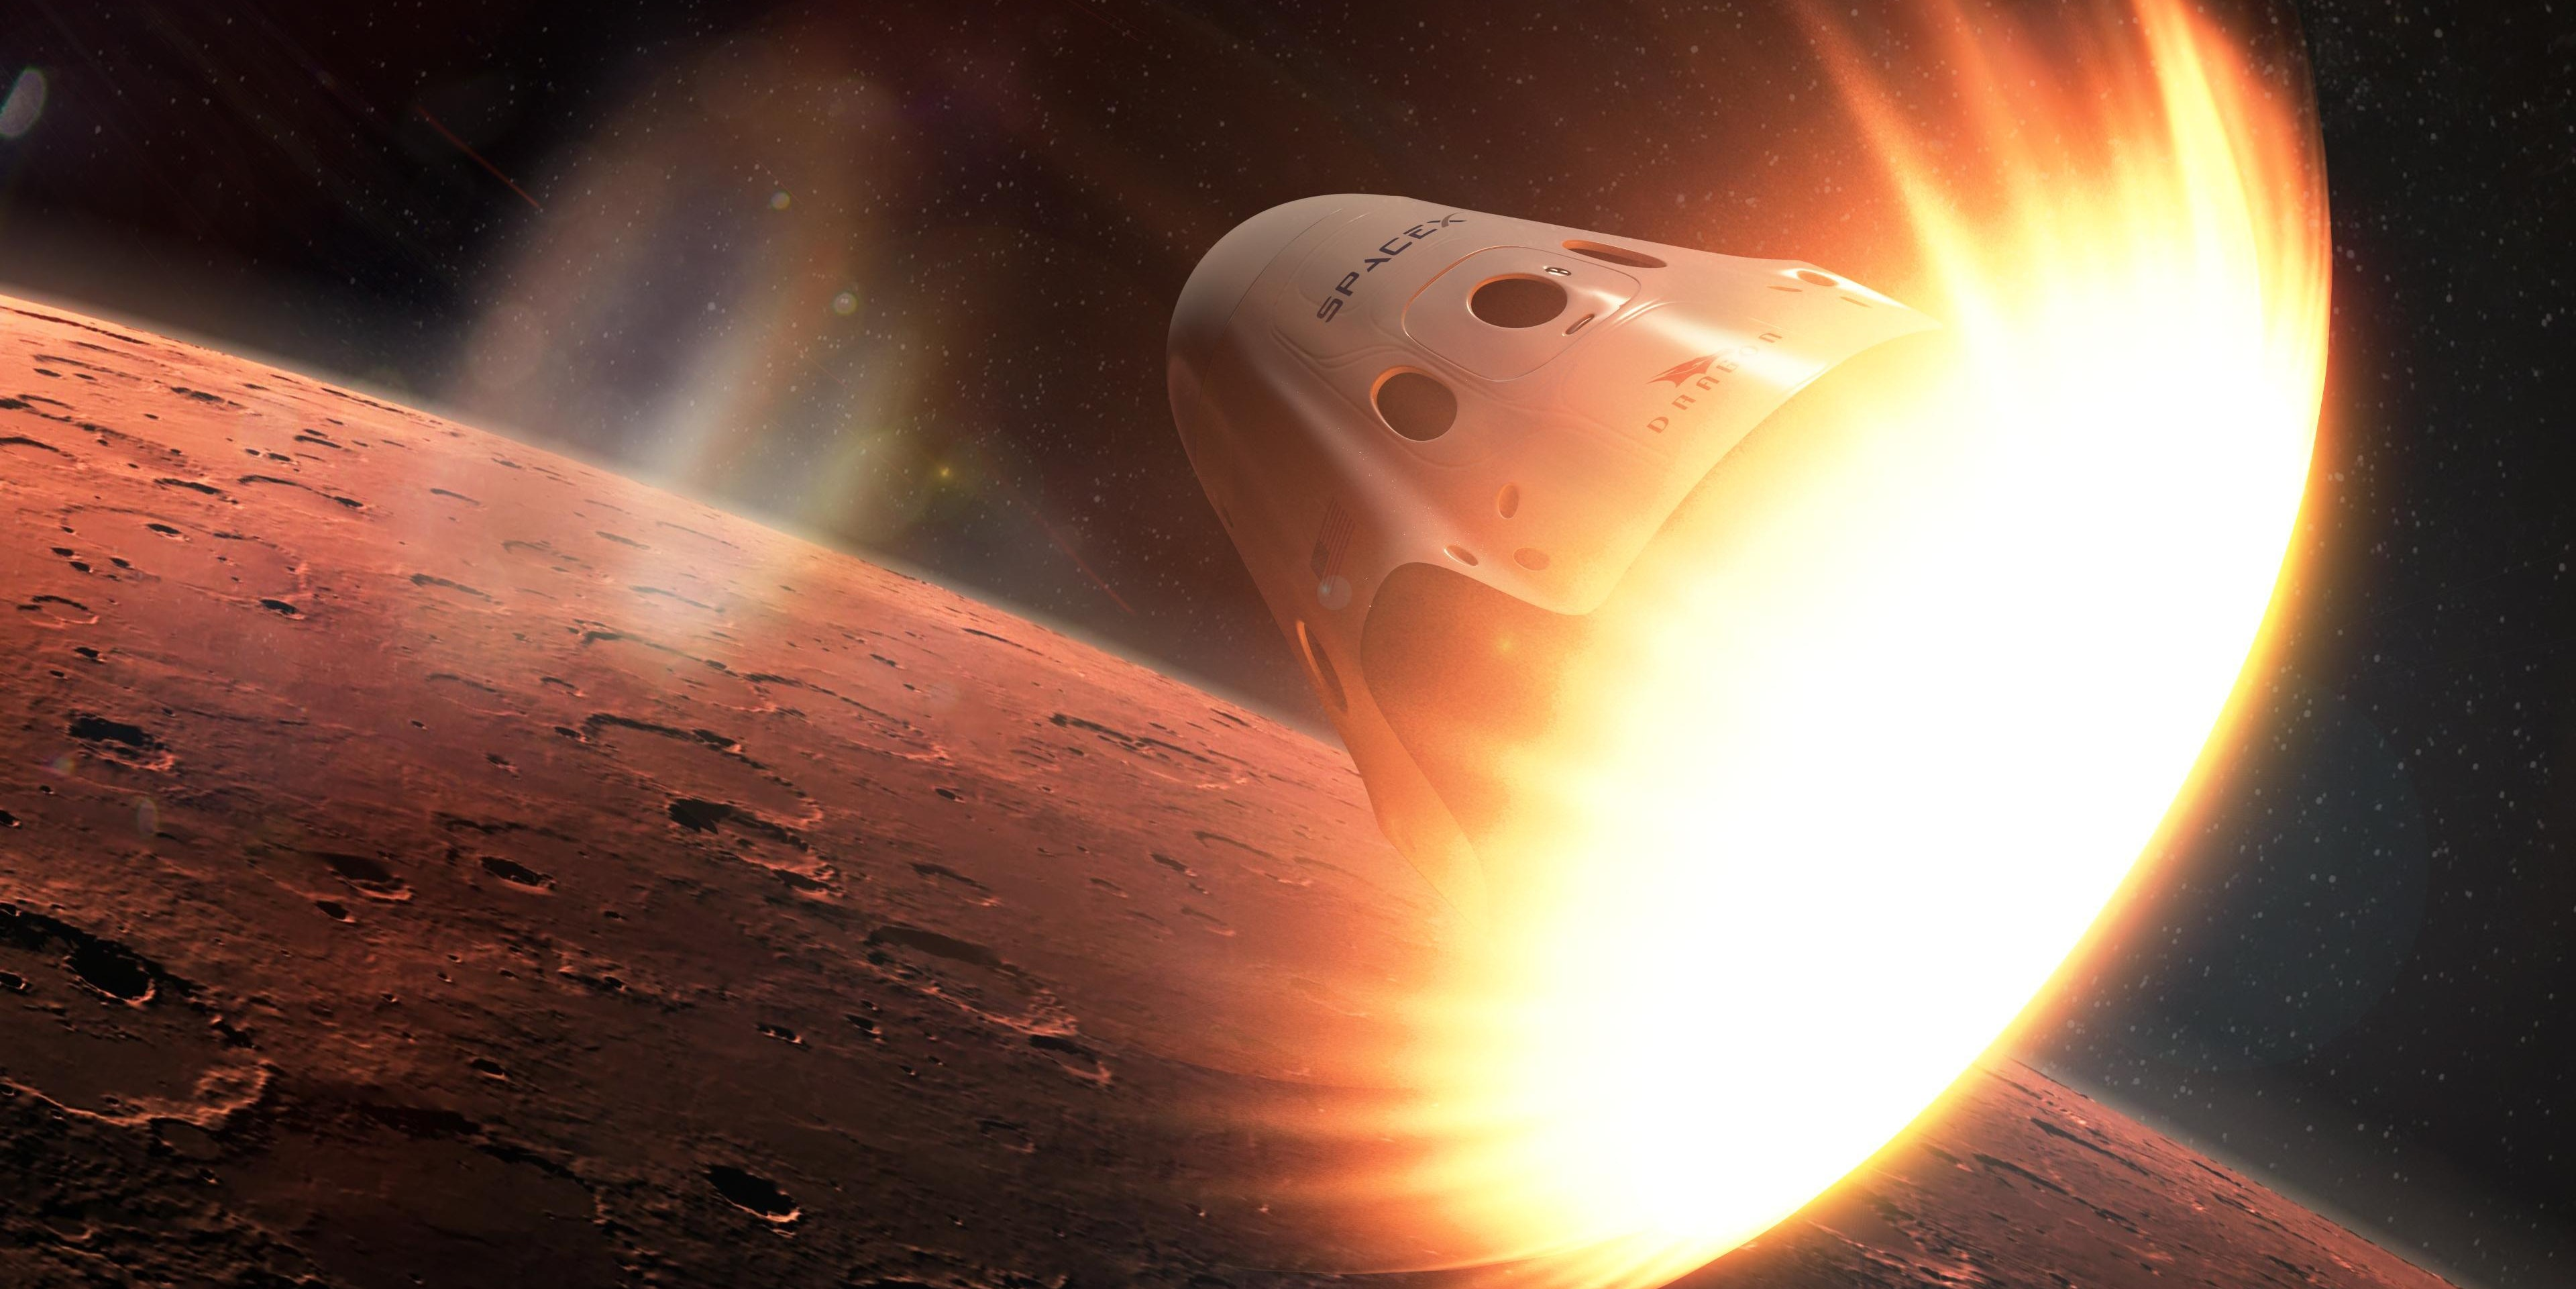 NASA: No, We're Not Racing SpaceX to Mars | Inverse